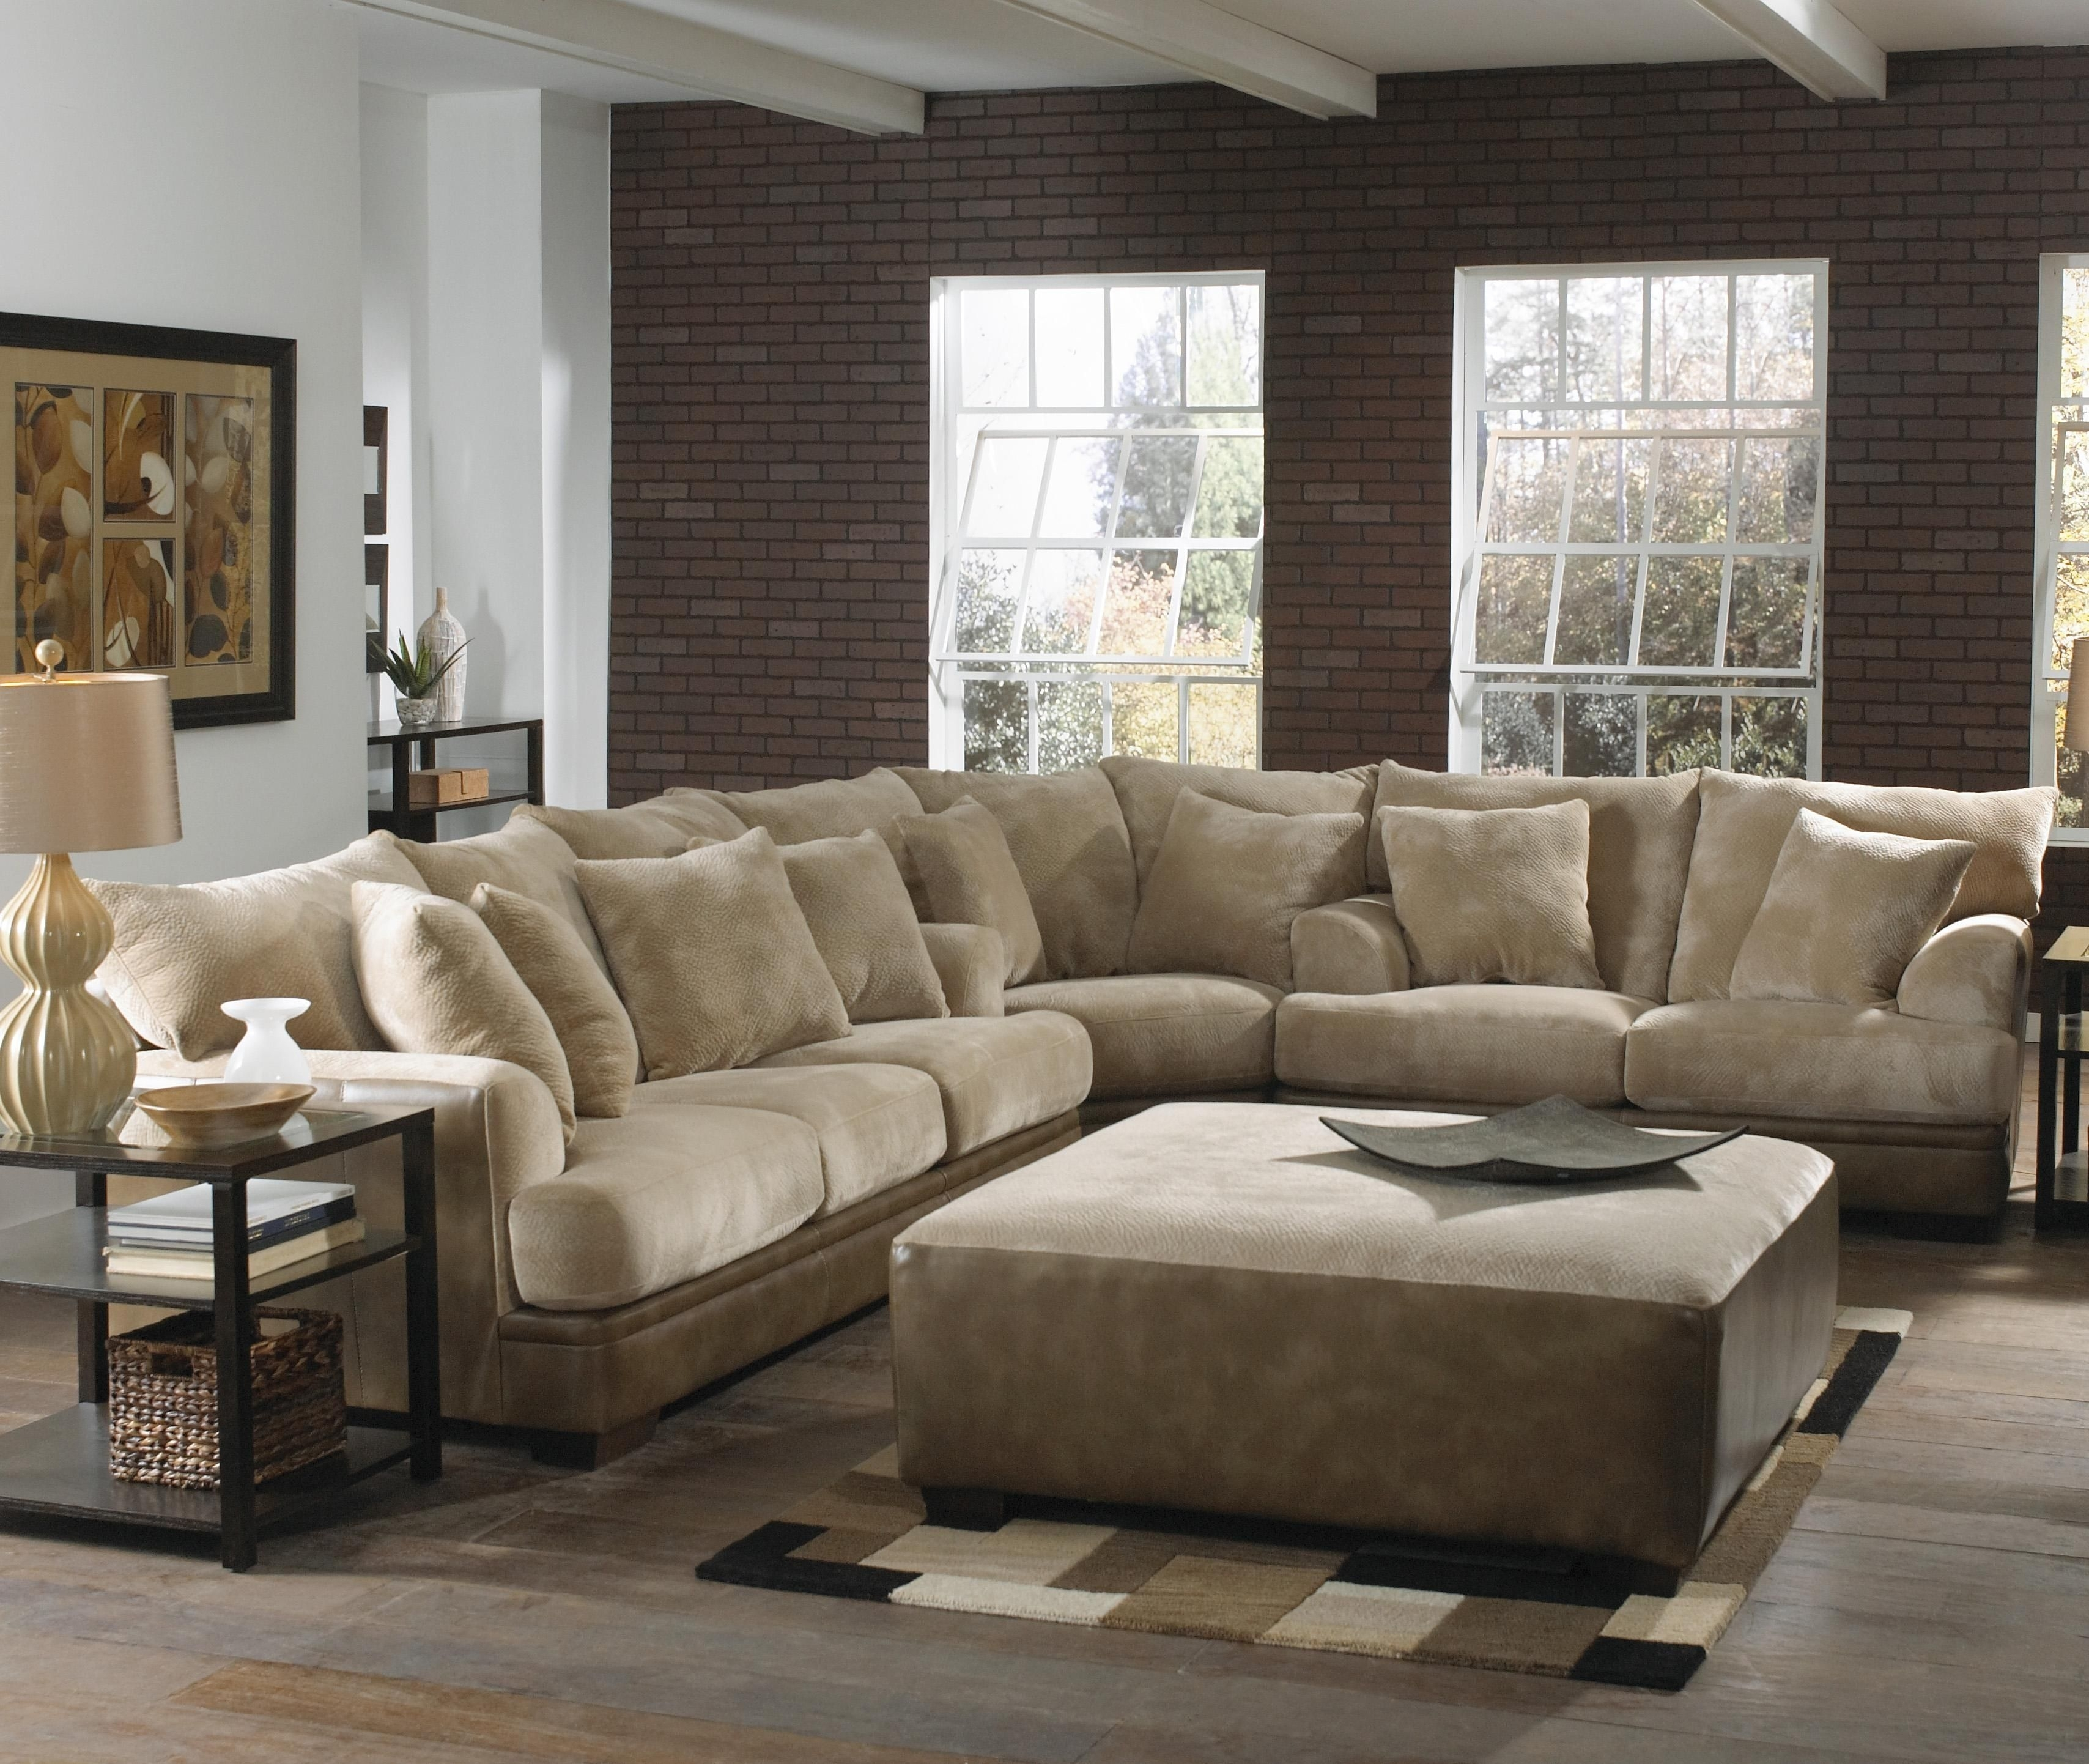 Large Tan Sectional Sofa | Http://ml2R | Pinterest | Tan With Regard To The Brick Sectional Sofas (Image 6 of 10)